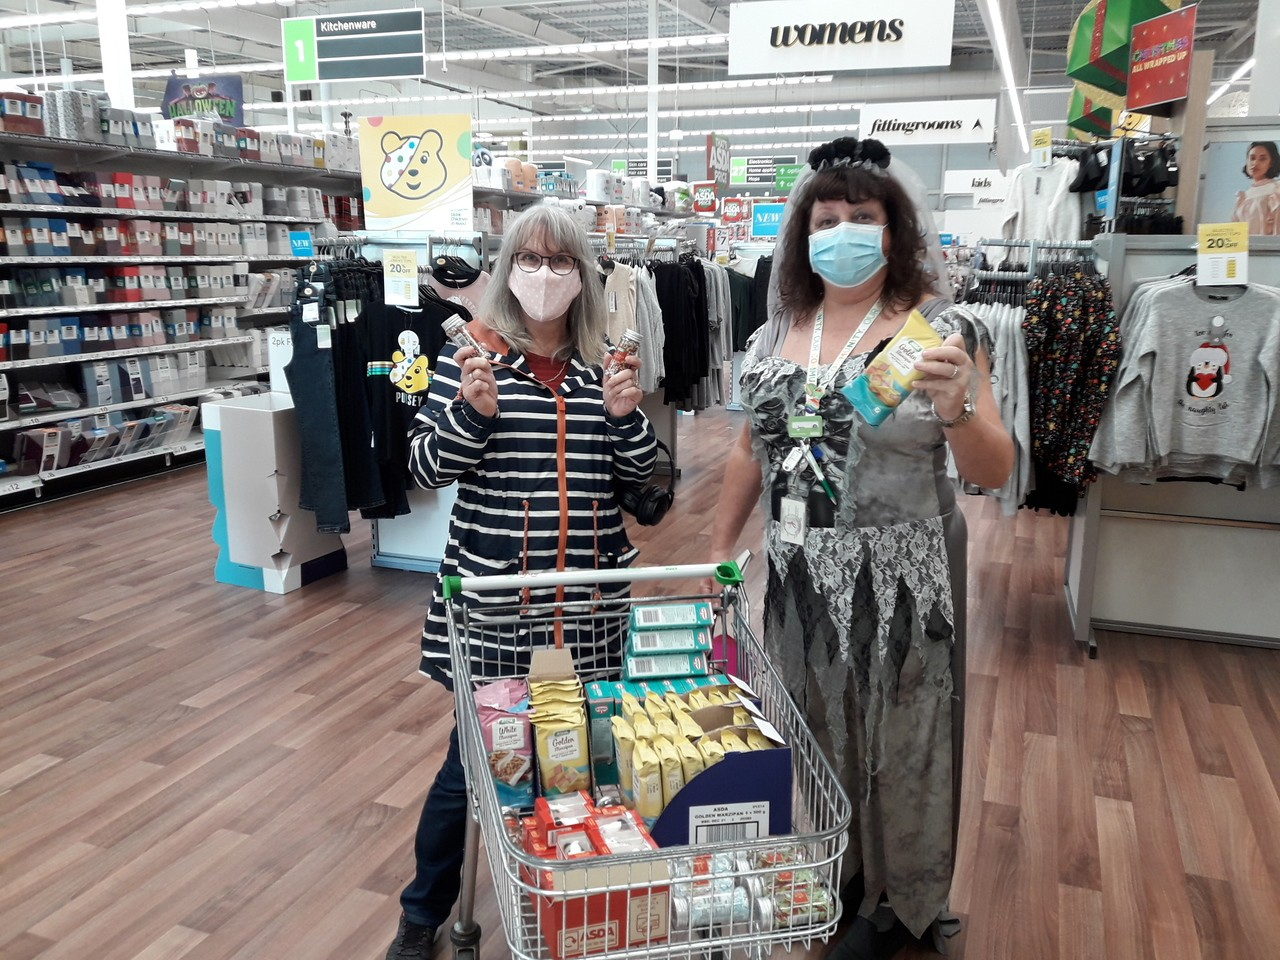 Decorations for community event  | Asda Dundee West